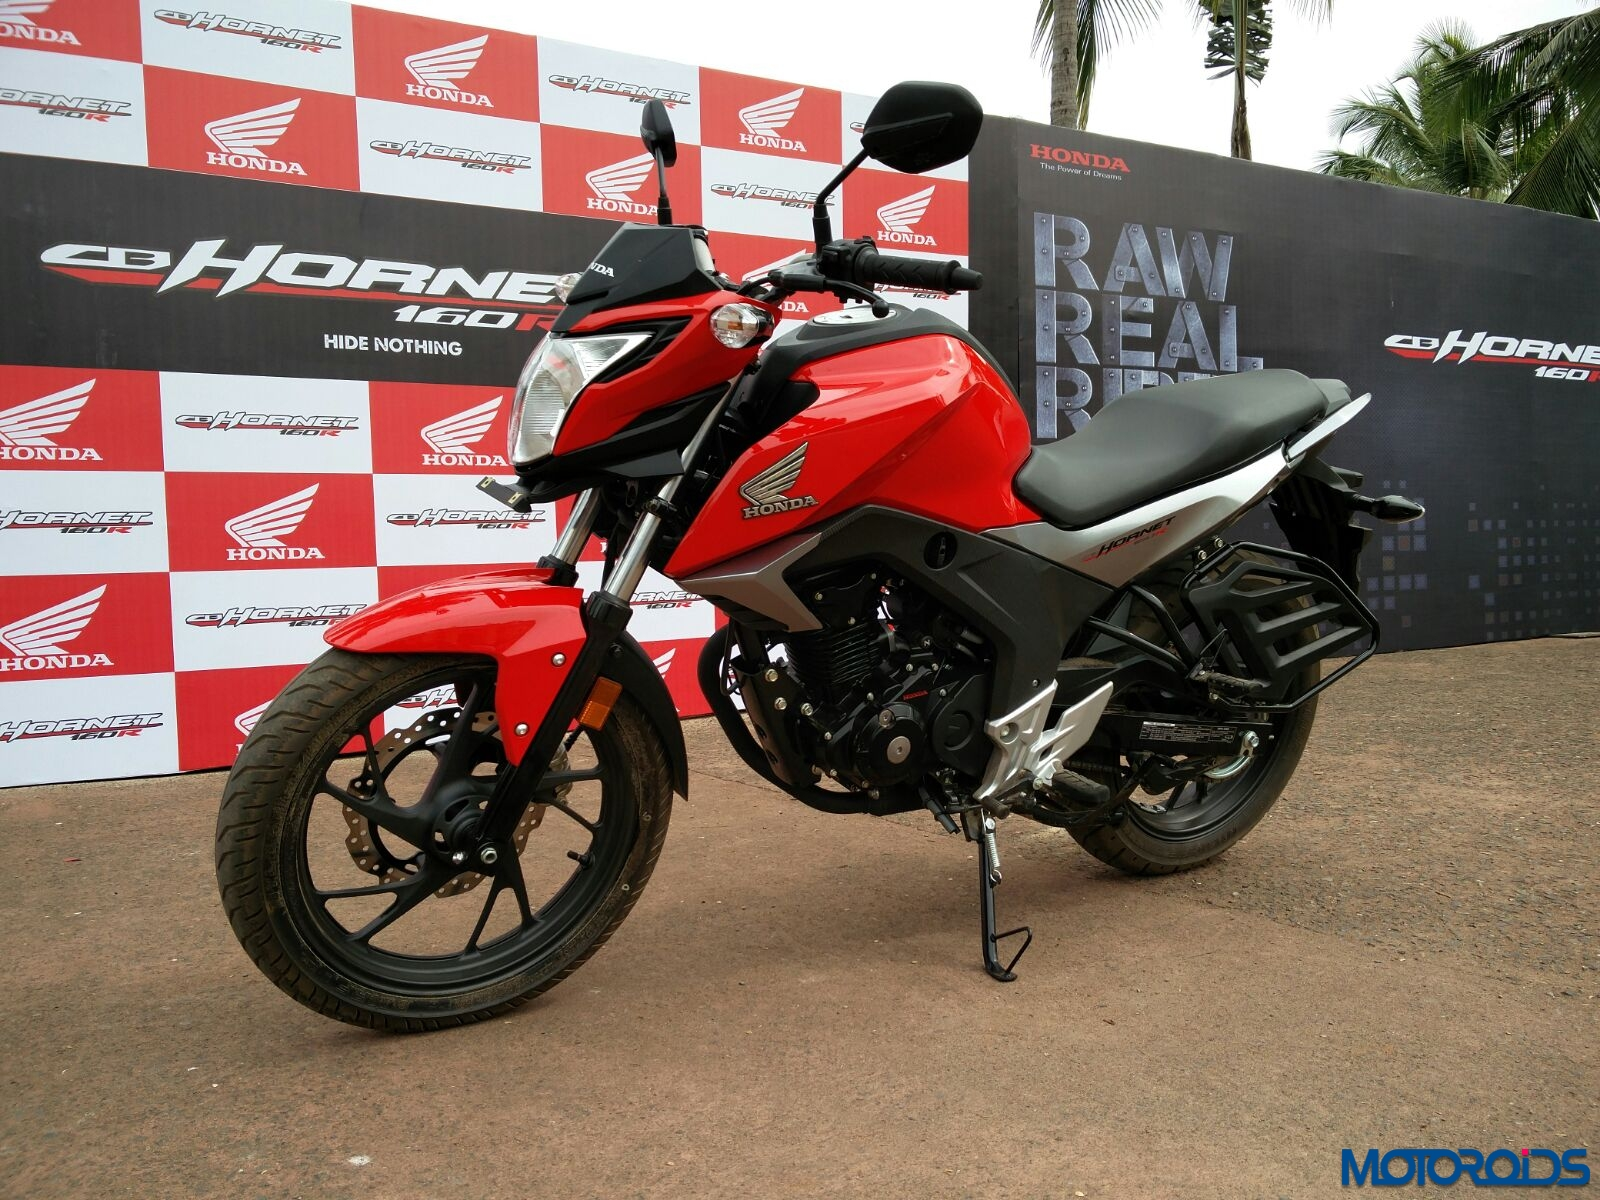 Bike sales December 2015 Honda 2 wheelers sell 306779 units 1600x1200